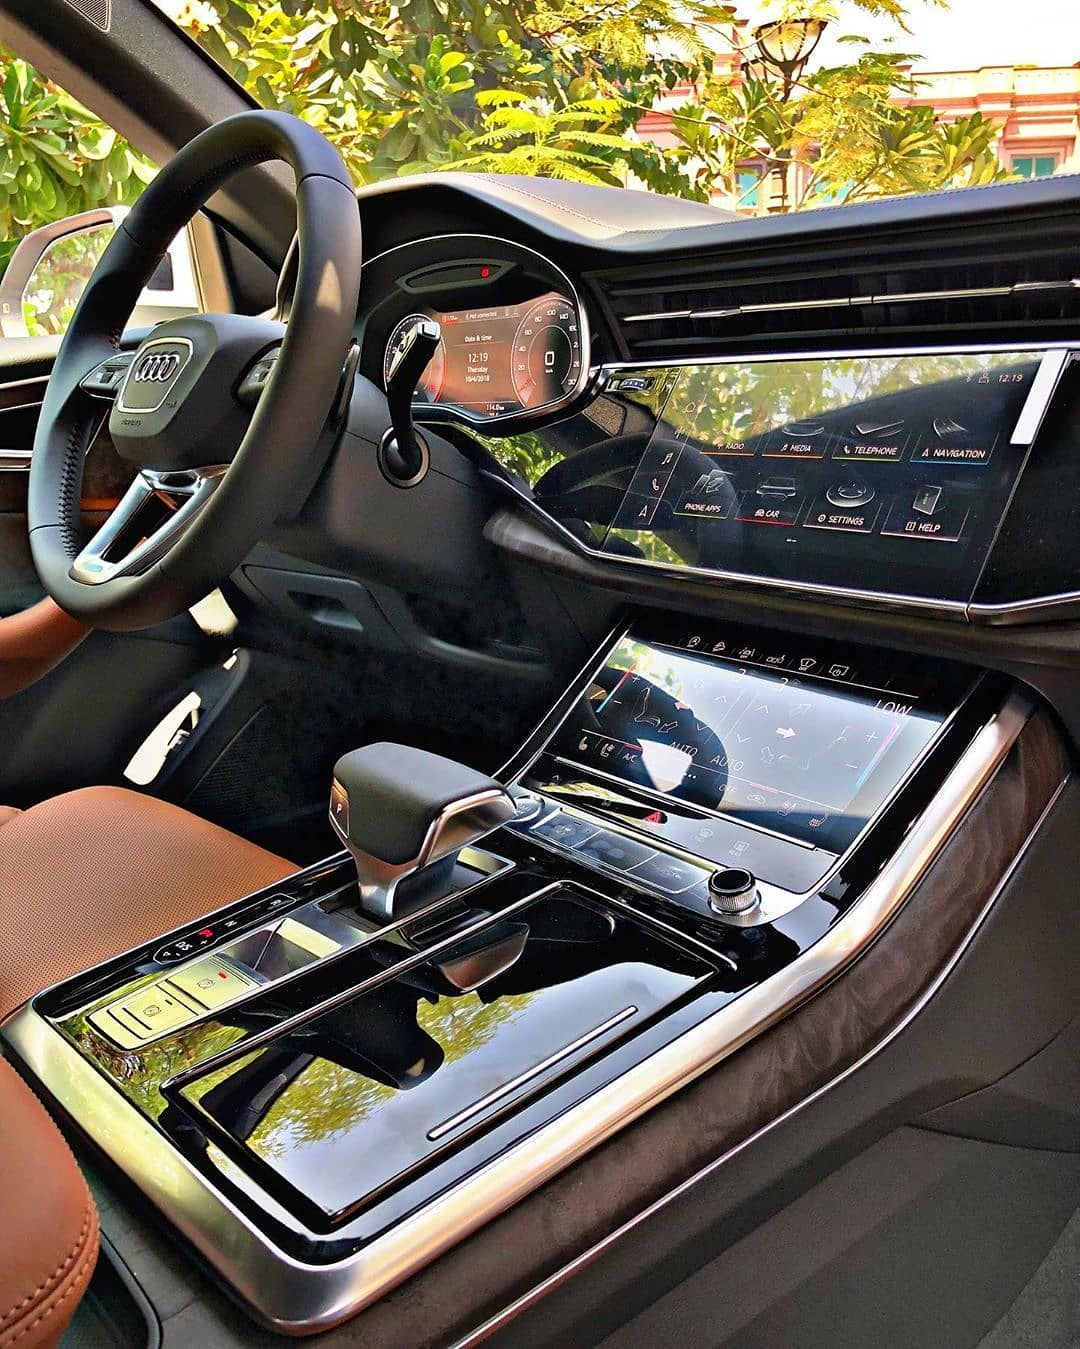 The All New Audi Q8 Follow Uber Luxury For More Courtesy Of Zaidzilla Carhoots In 2020 Audi Interior Best Luxury Cars Dream Cars